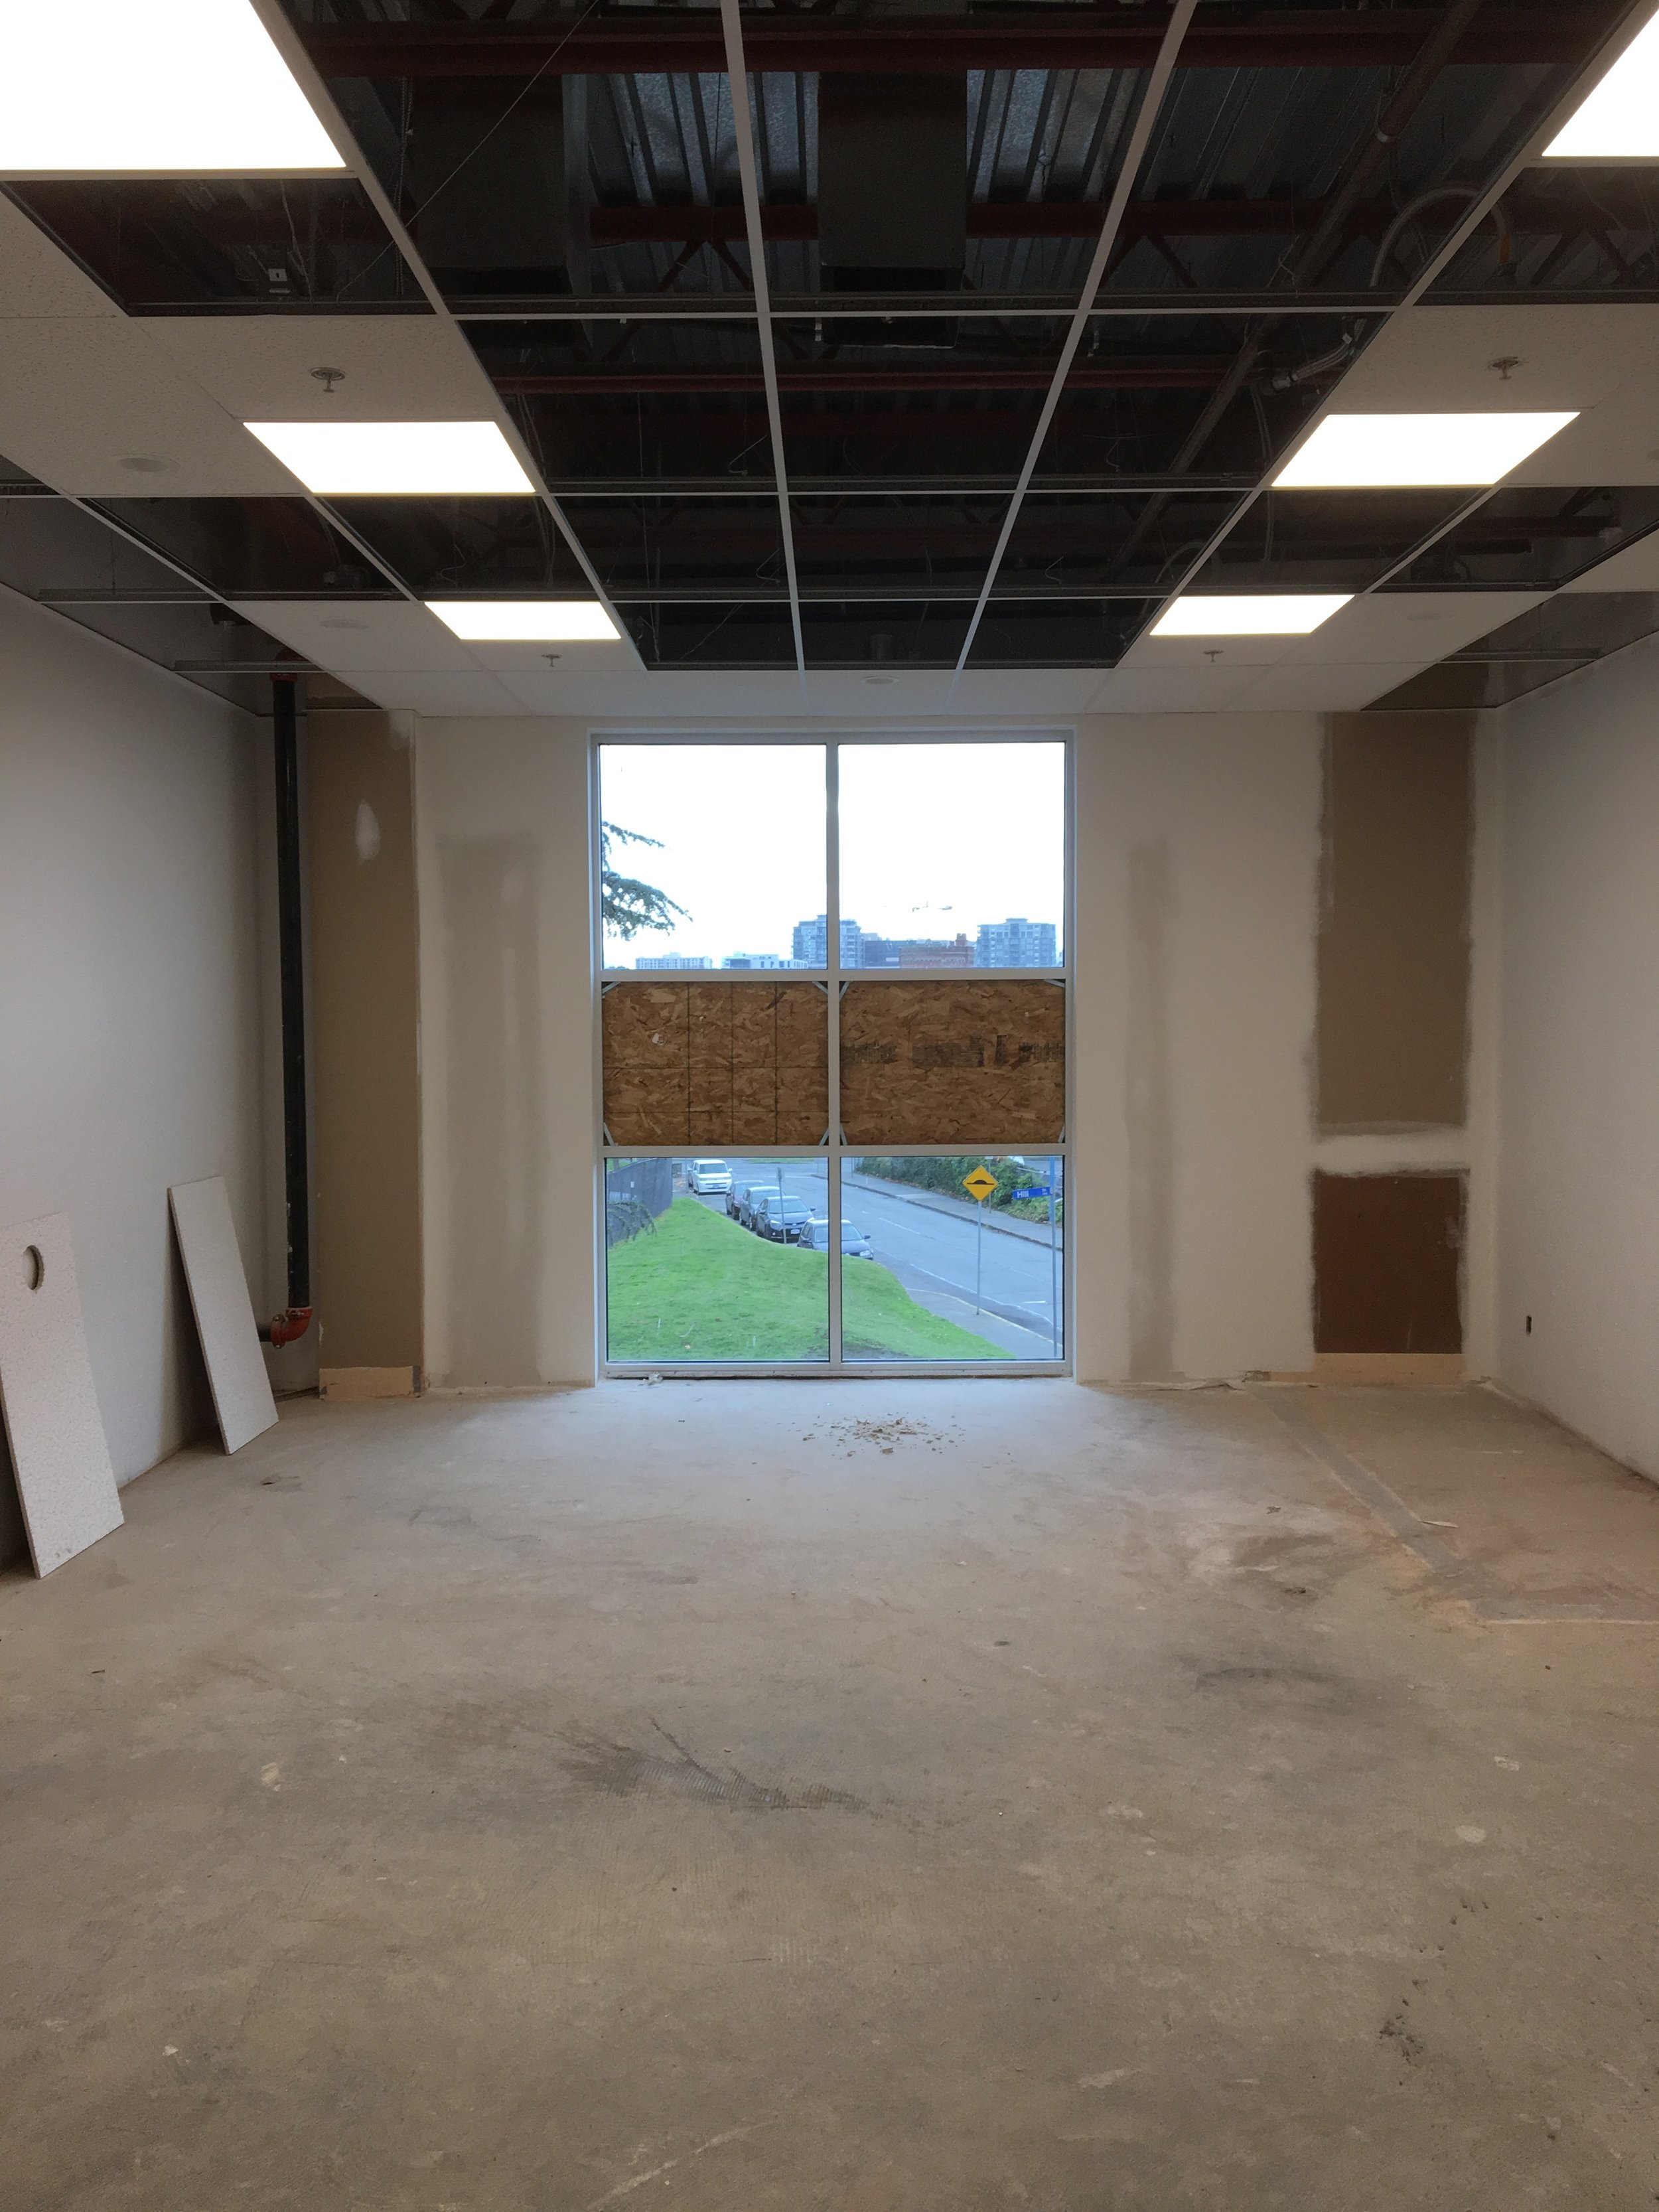 PWP's Living room under construction